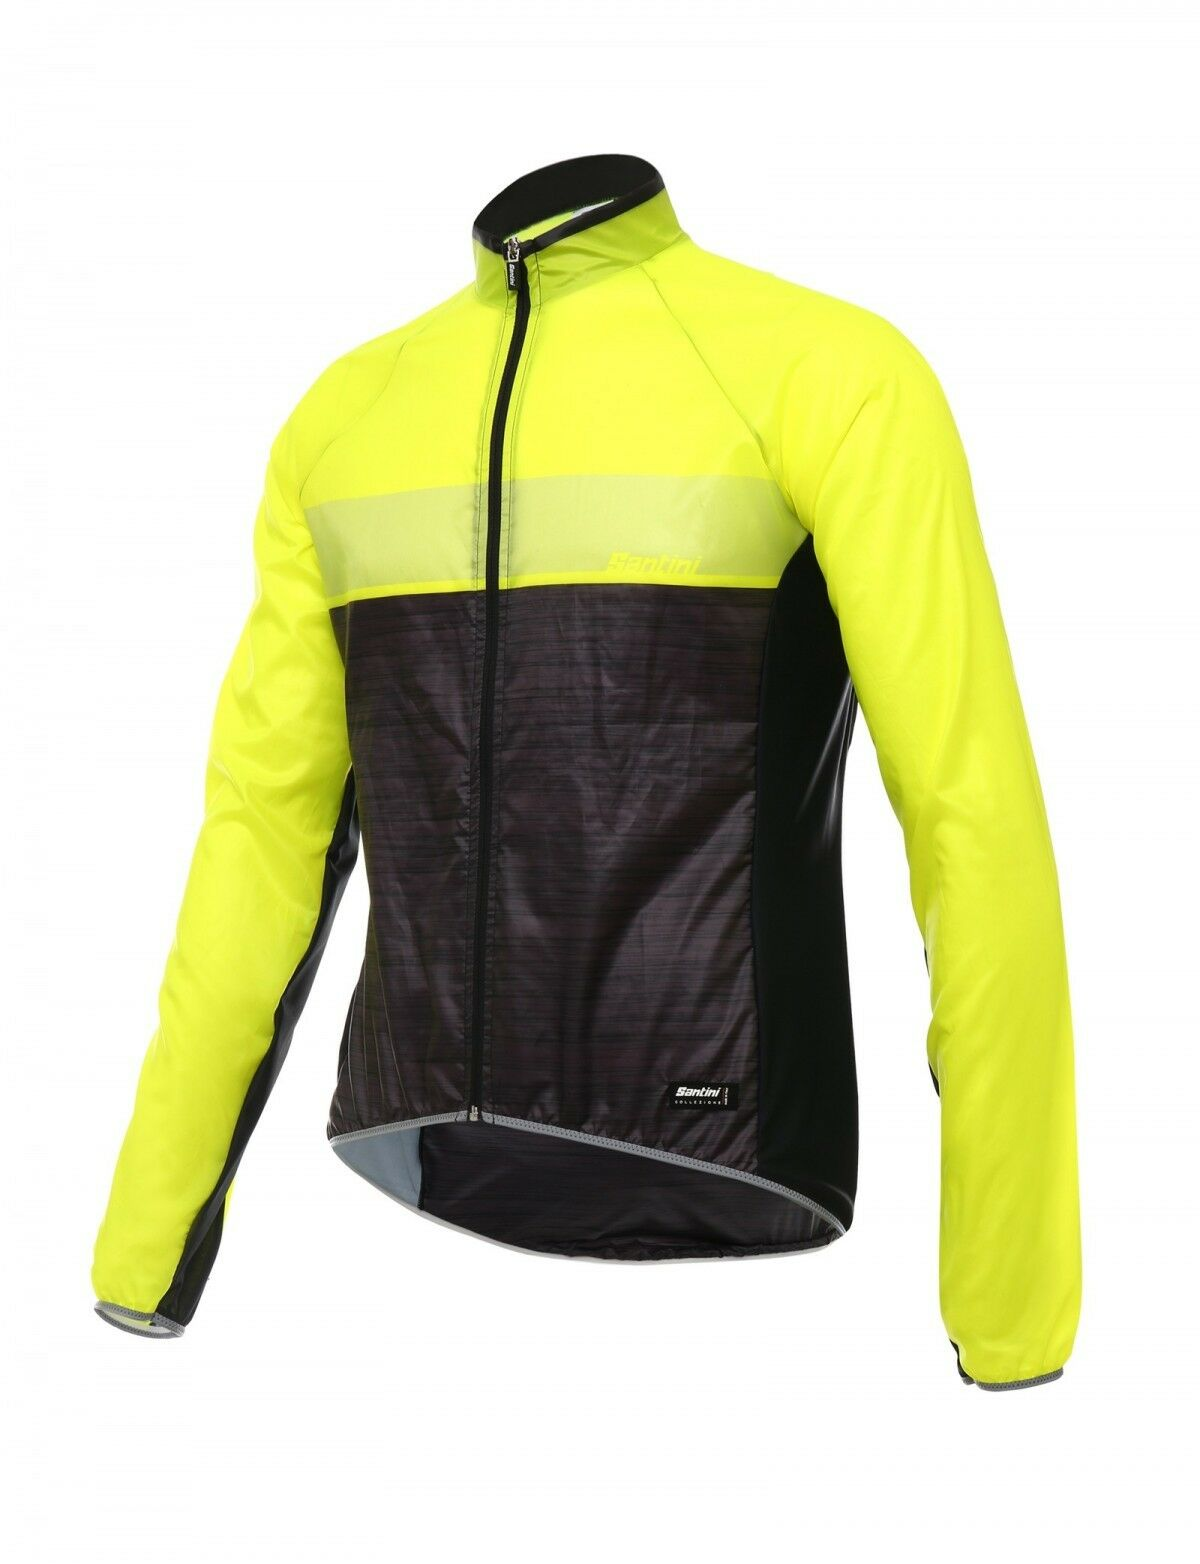 SMS SANTINI 365 SKIN WINDBREAKER . Gelb FLUO. SIZE MEDIUM. BRAND NEW WITH TAGS